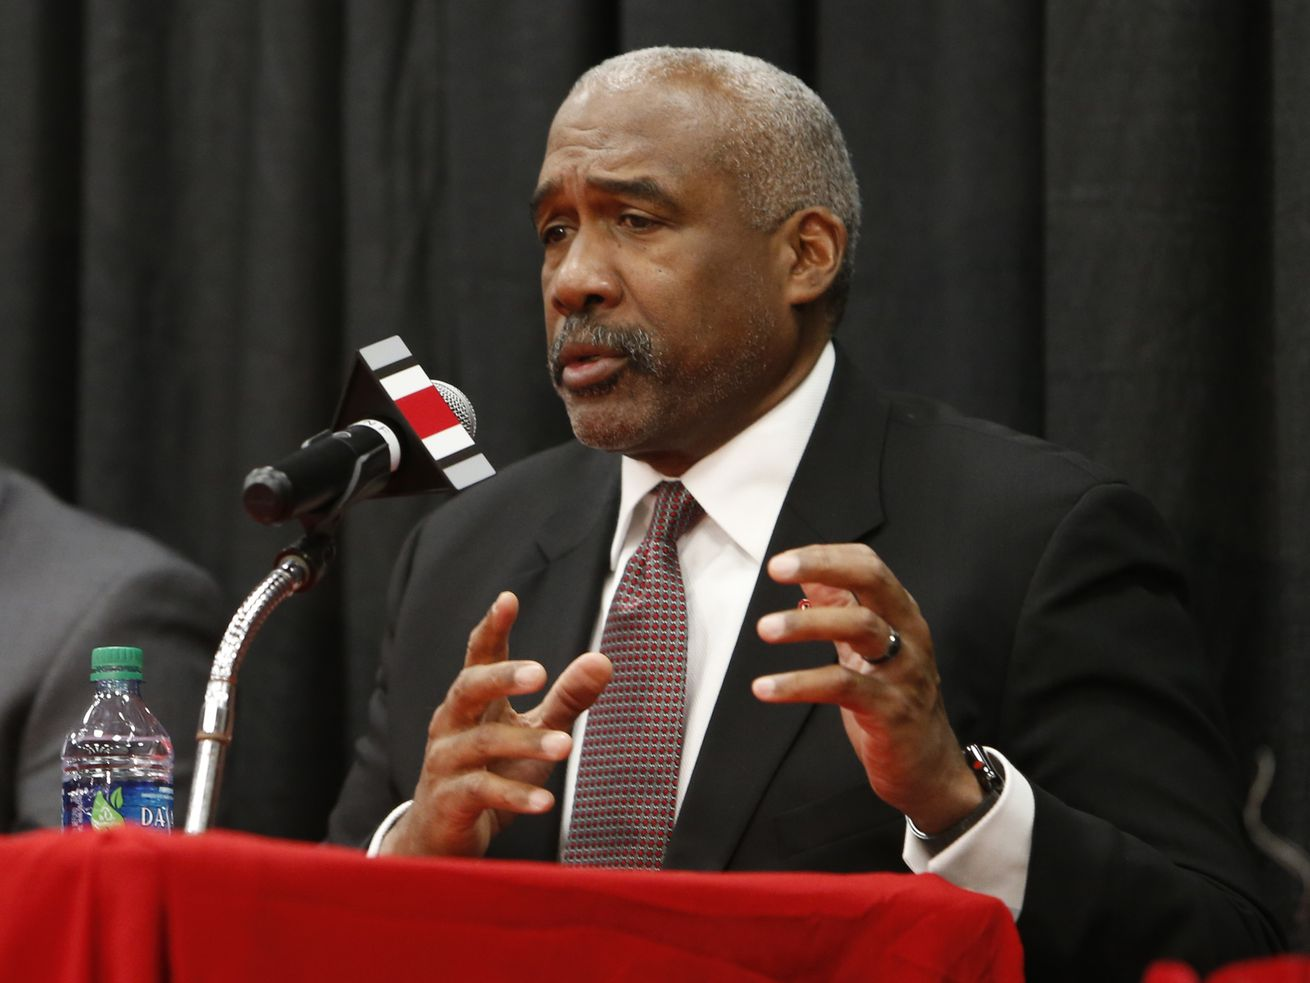 According to documents released by the university, Ohio State's president asked athletic director Gene Smith if the school could play the 2020 football season without the Big Ten.